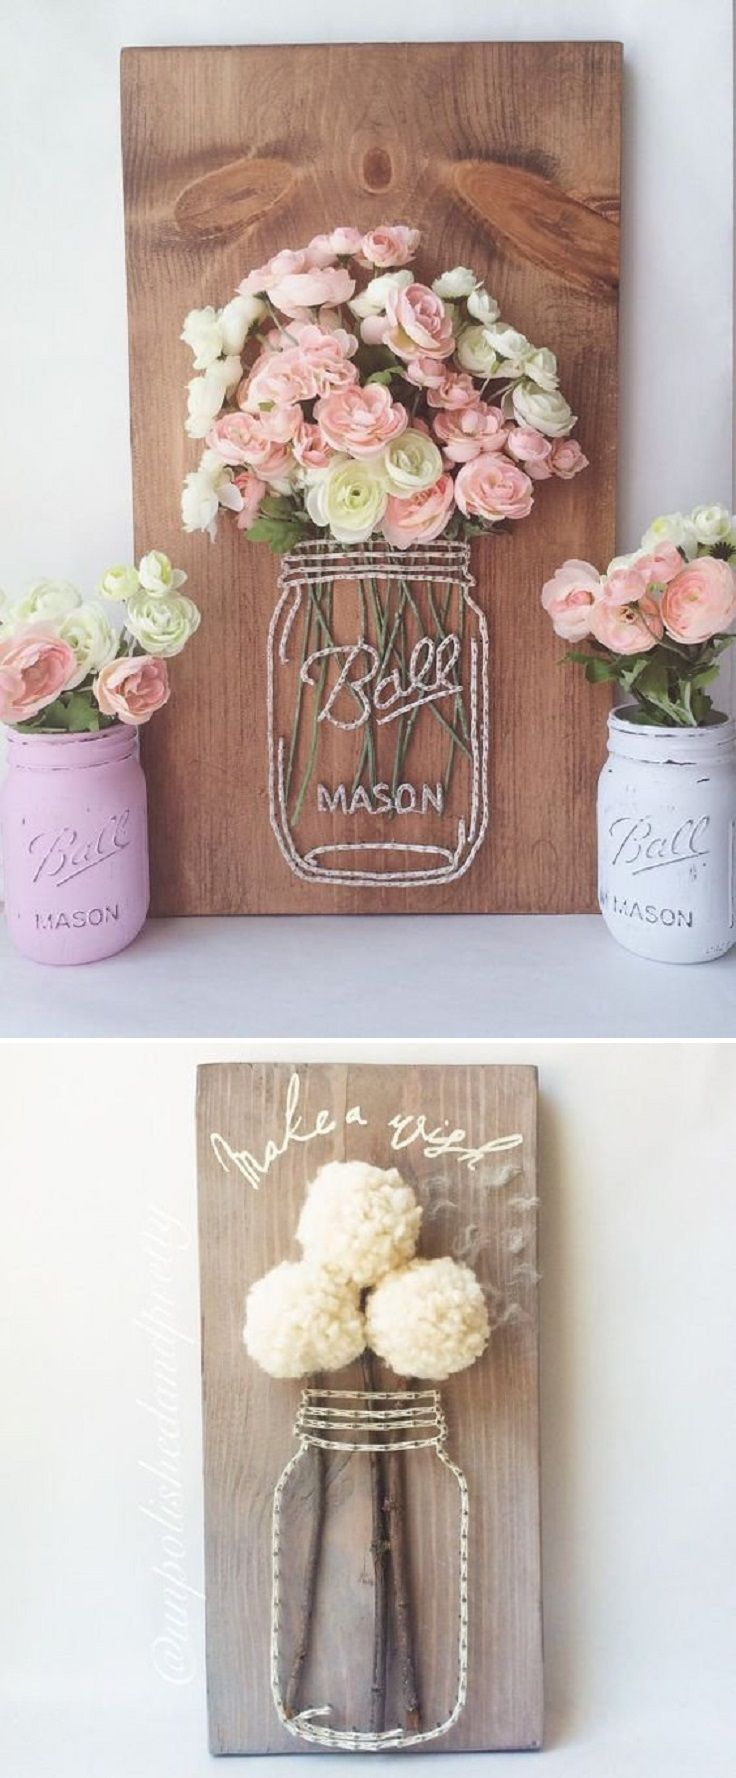 Craft a Mason Jar String Art with Wood, Yarn and Faux Flowers - 16 Picture Perfect Spring Decorations to Celebrate the Blissful Season #bonnets